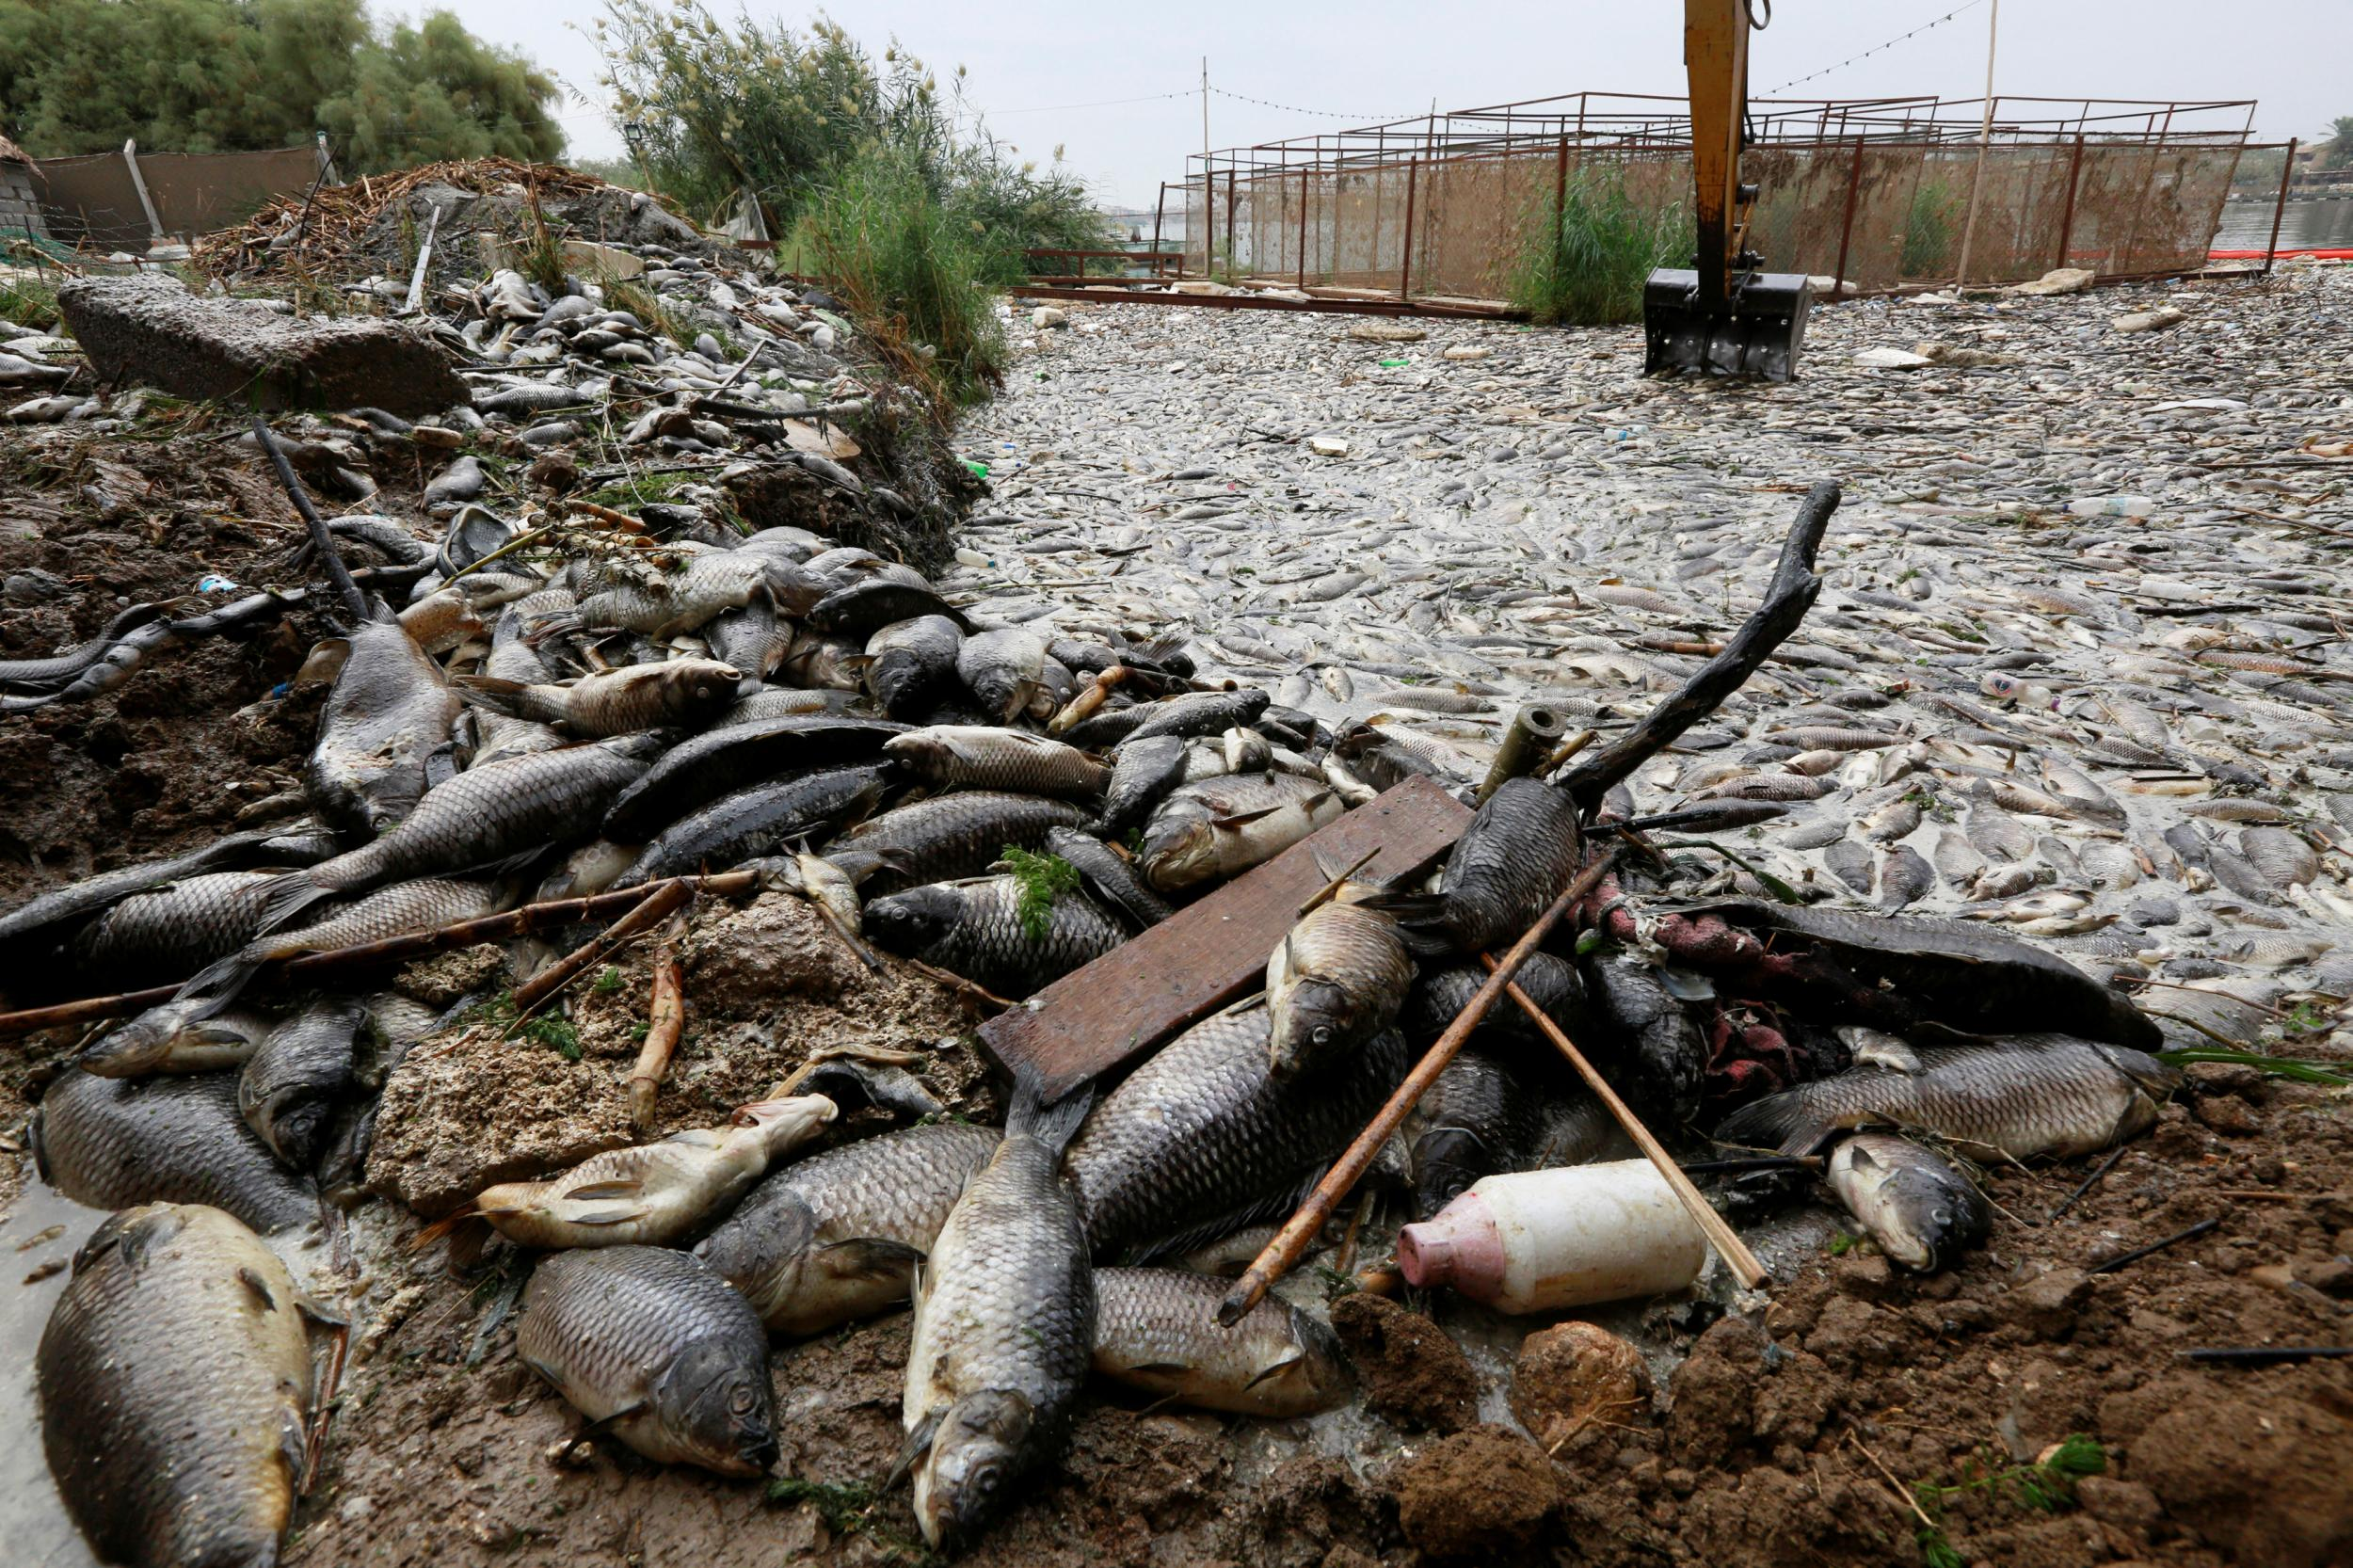 Thousands of tonnes of freshwater carp have suddenly died along Iraq's Euphrates river, sparking fears humans could be poisoned due to country's soaring pollution levels. The country's agriculture ministry ruled out foul play but many fear soaring pollution is behind sudden death of freshwater fish.